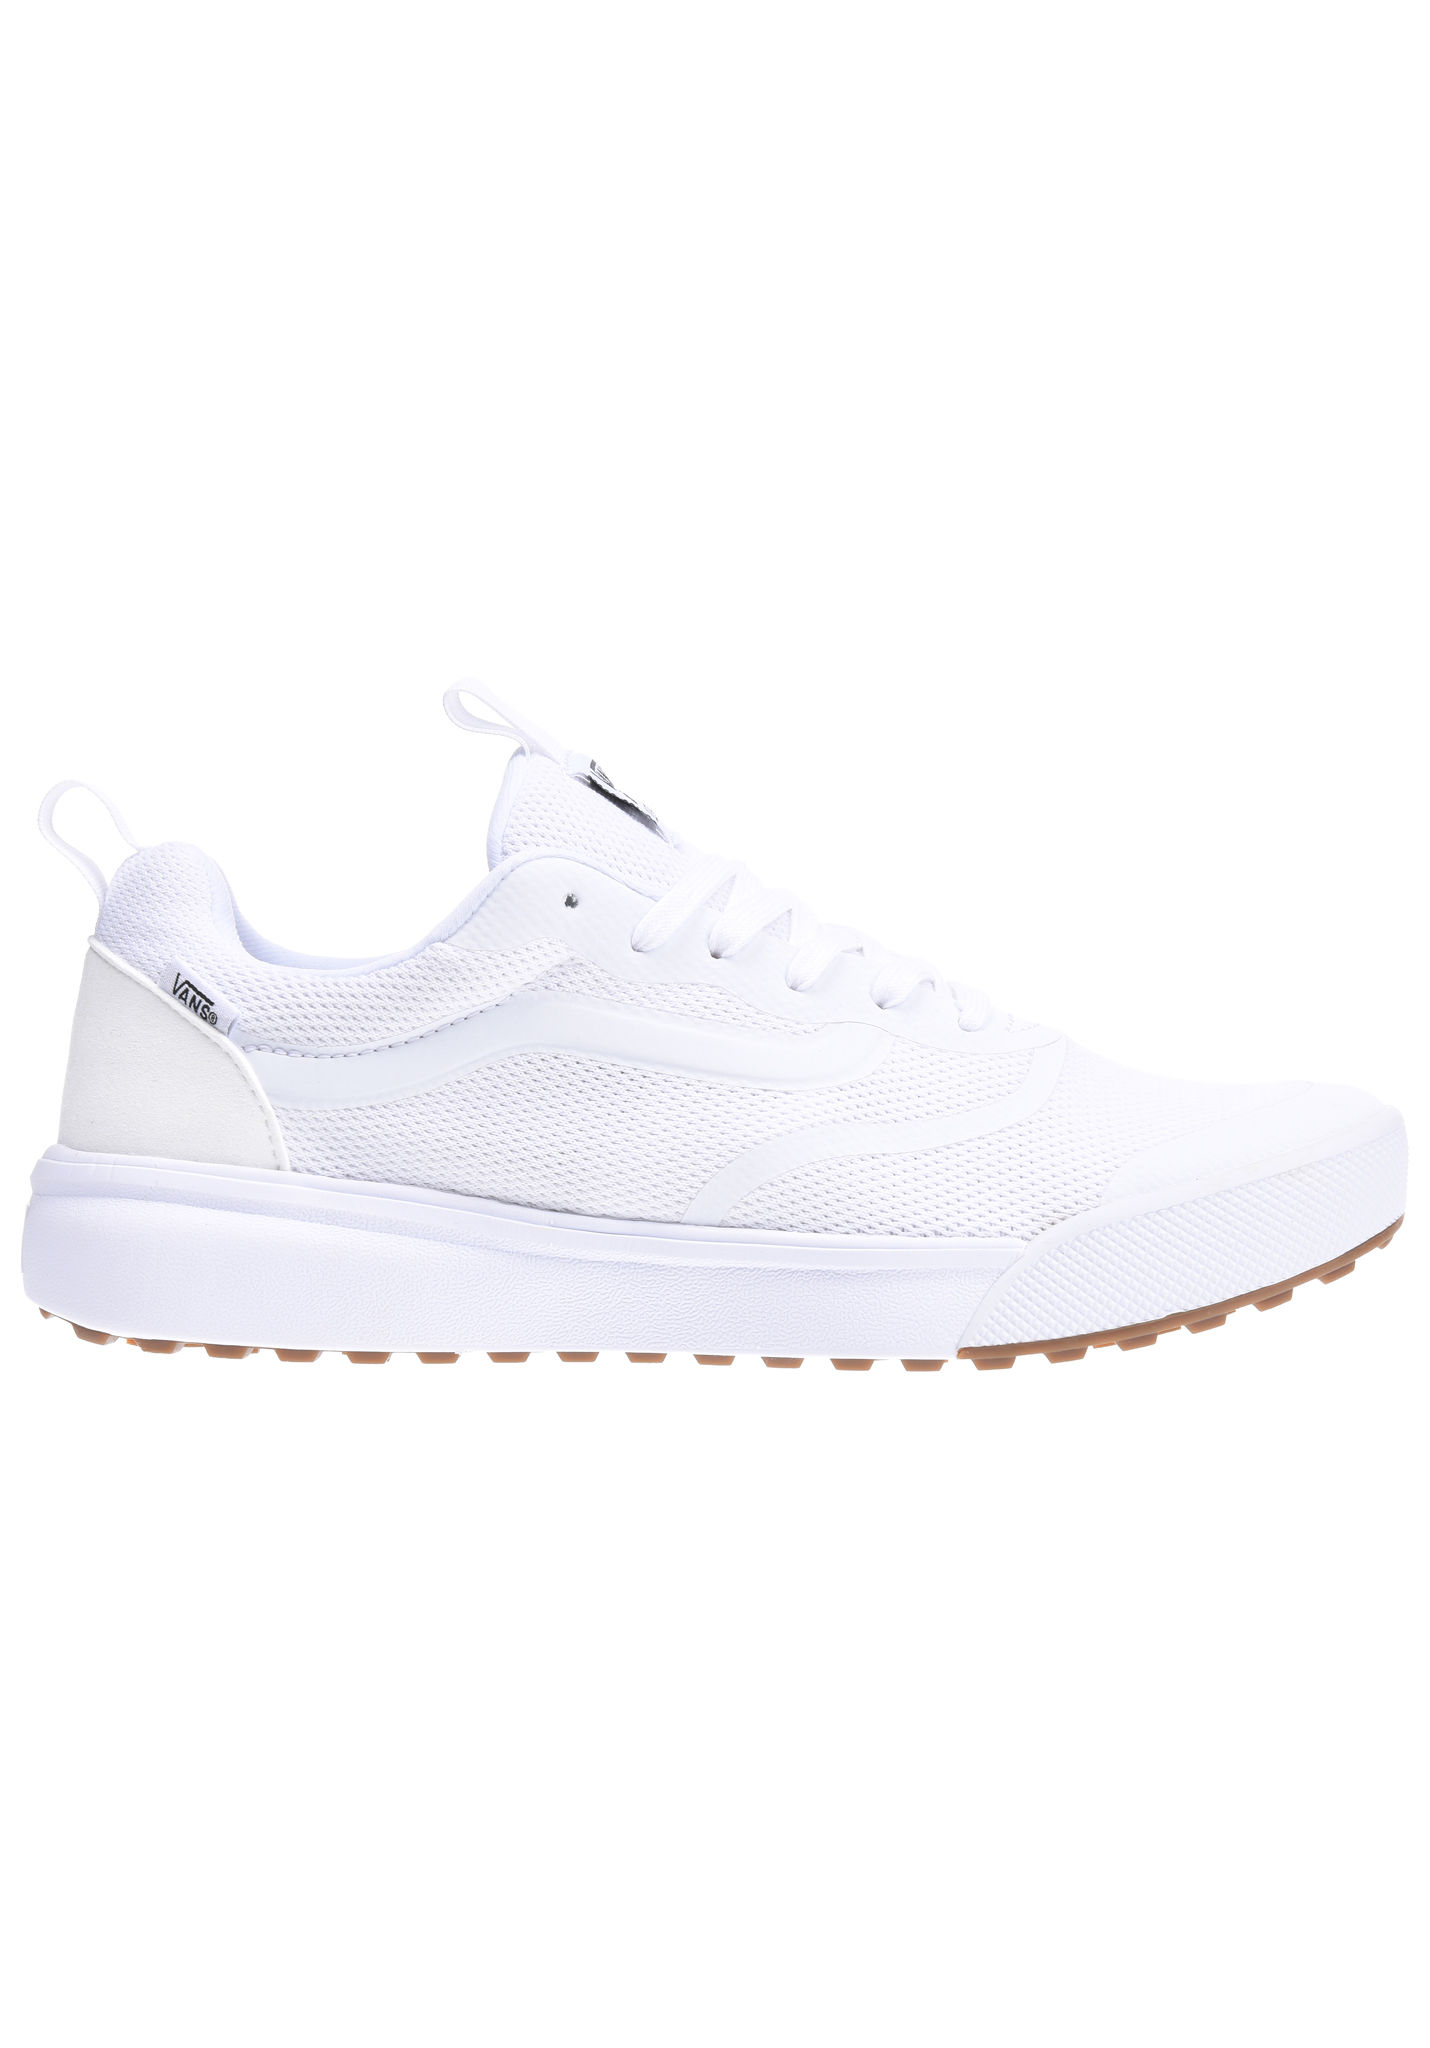 Camionnettes Gamme Ultra Chaussures Rapidweld Blanc cgZNkQX